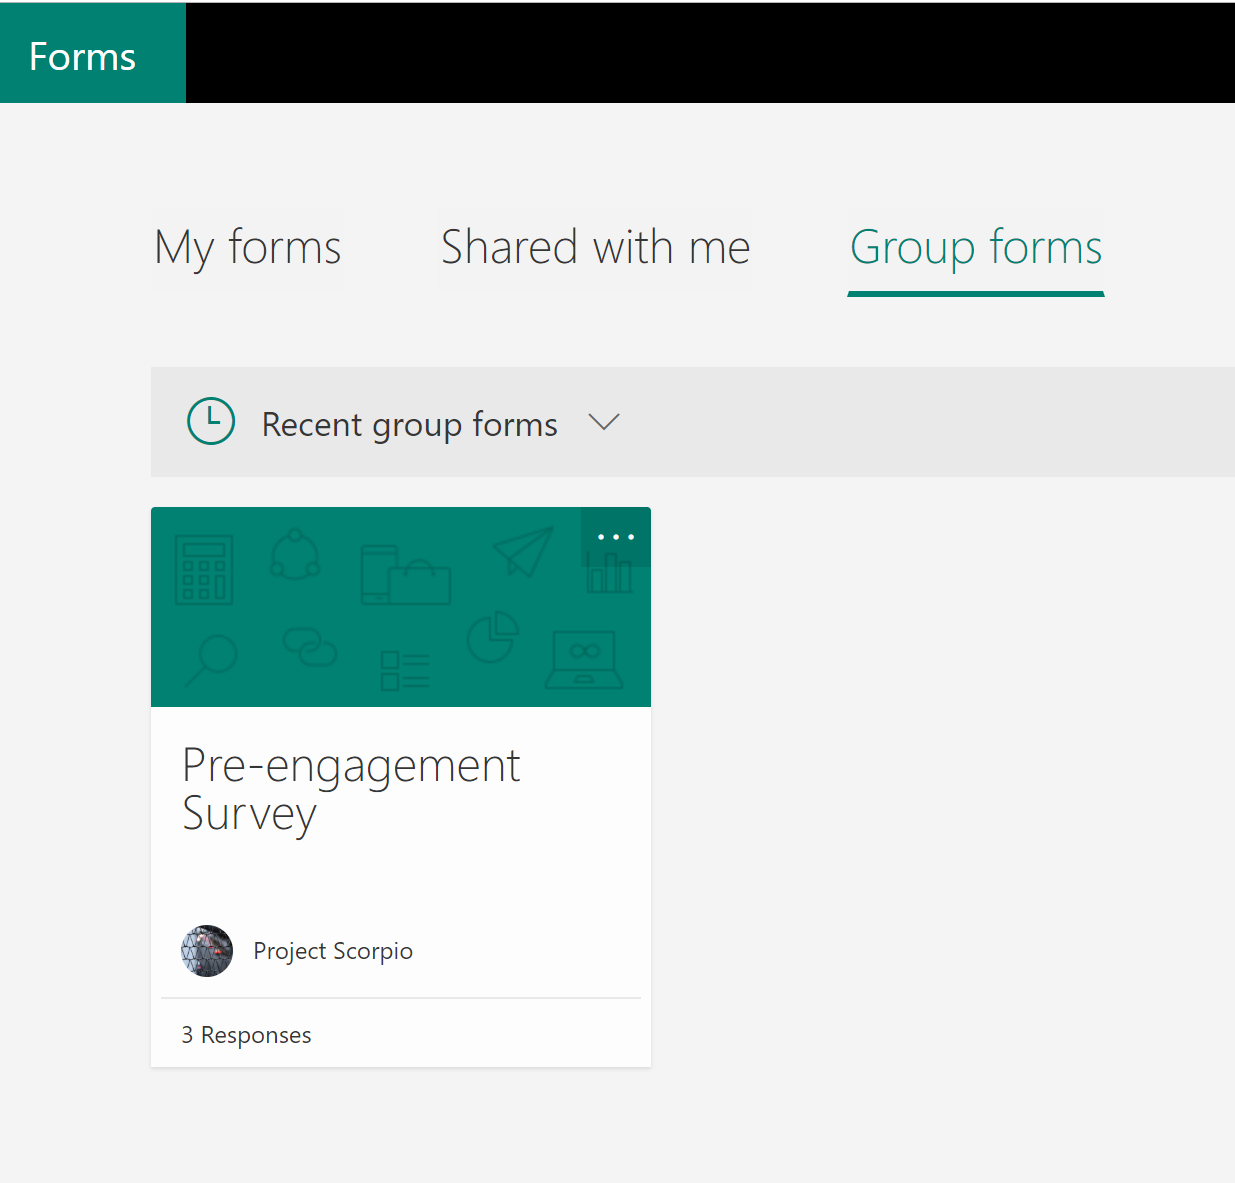 Groups forms in Microsoft Teams